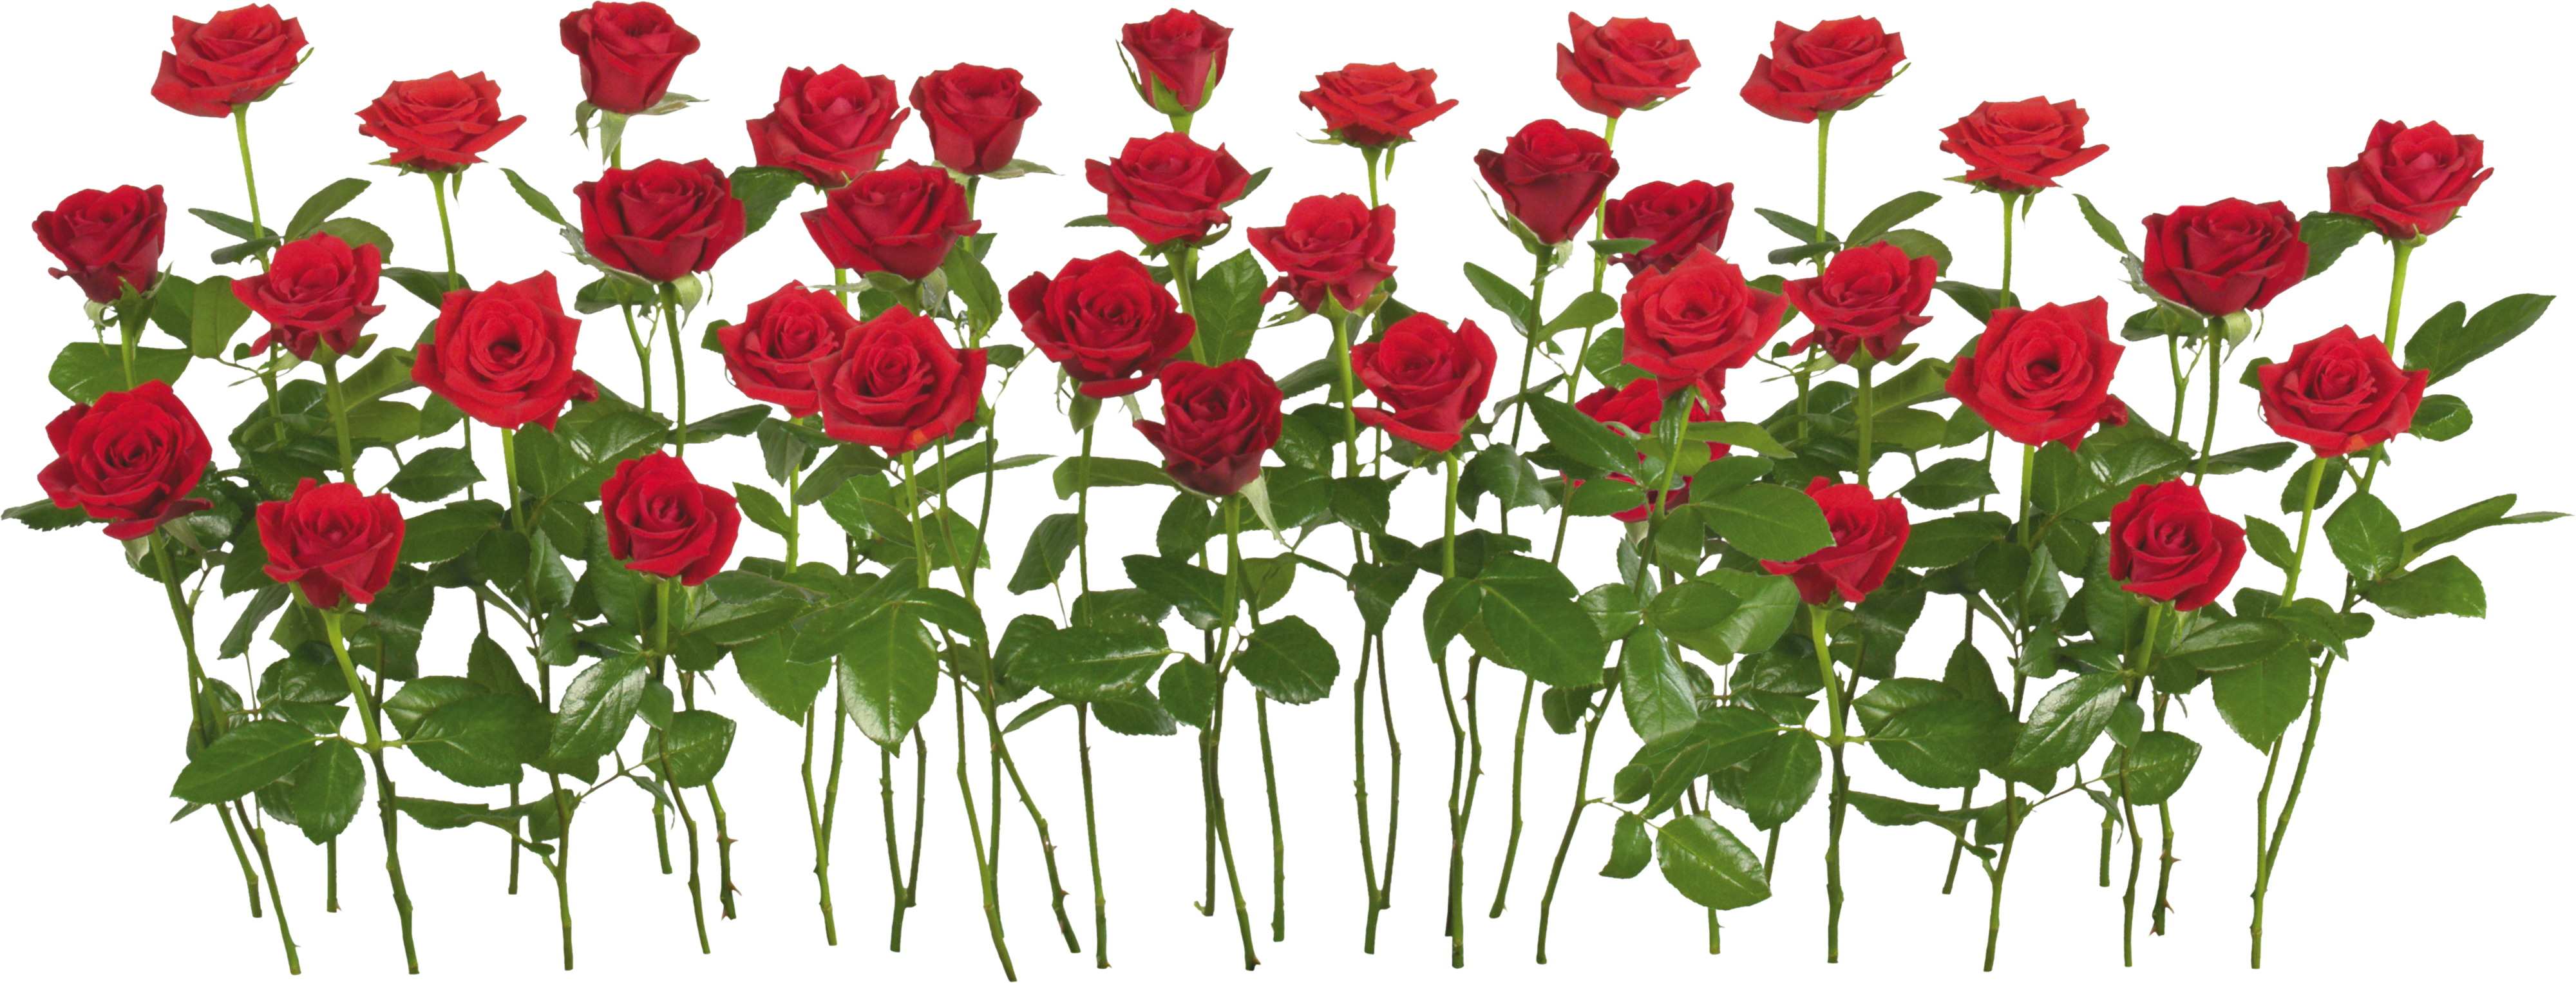 Flower garden png. Rose icon clipart web